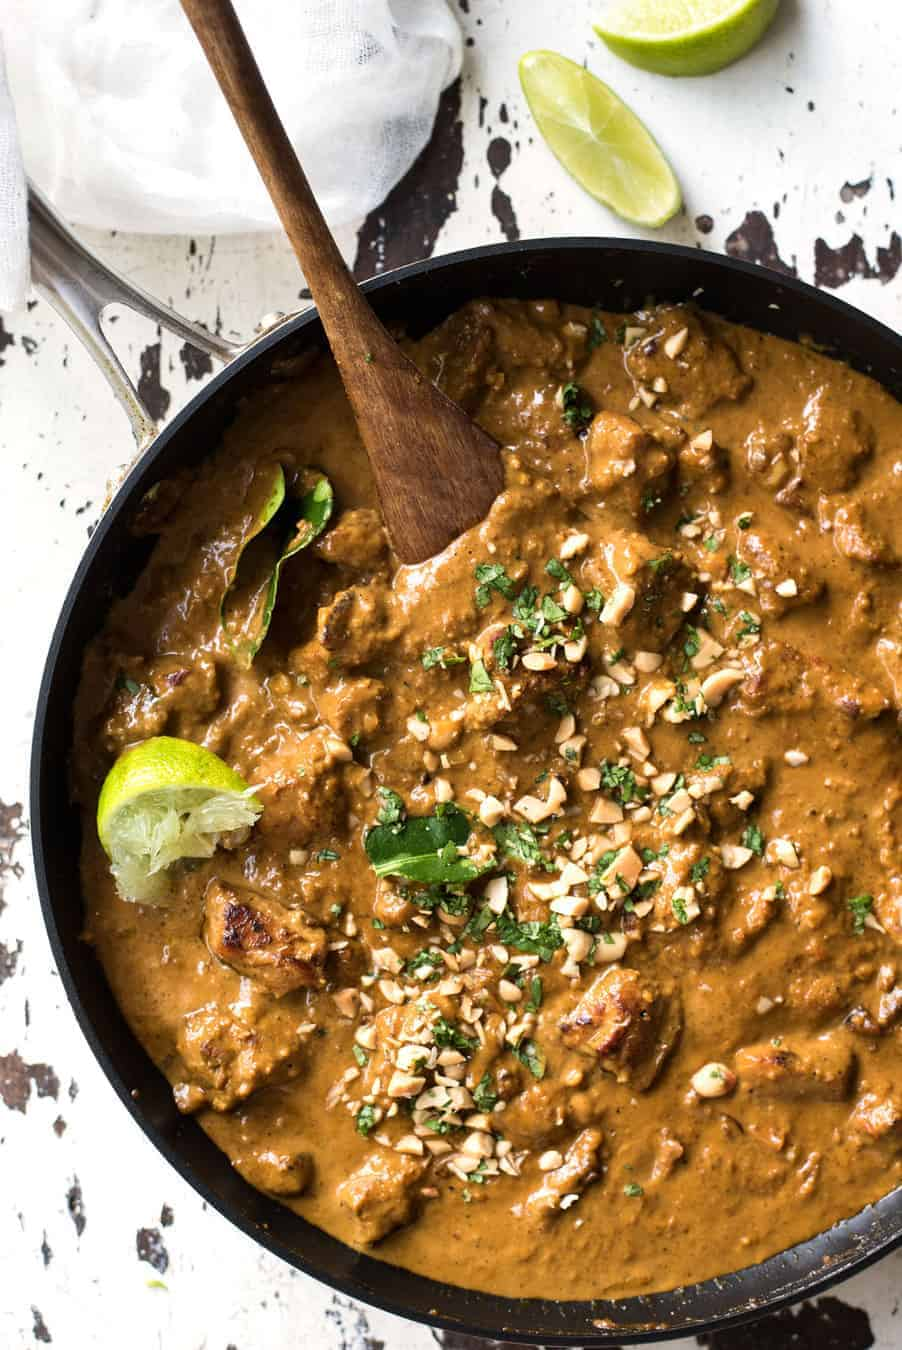 Chicken Satay Curry - Satay lovers dream come true! Chicken marinated in an authentic homemade satay seasoning simmered in a peanut satay sauce. Authentic restaurant / chef recipe, easy to make!